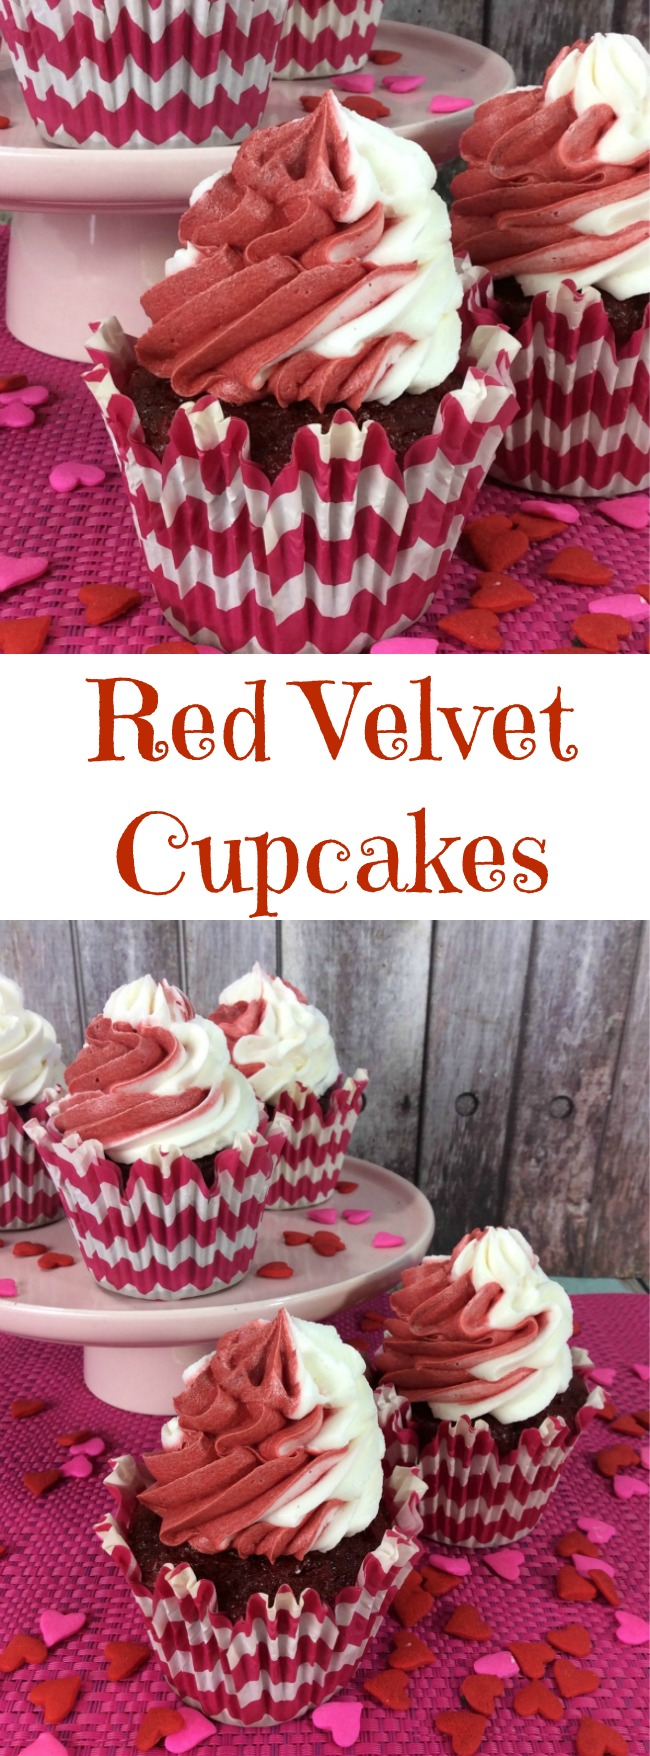 Here we have one of my favorite Valentine's Day recipes, Red Velvet Cupcakes recipe. Of course you can make this anytime of the year.